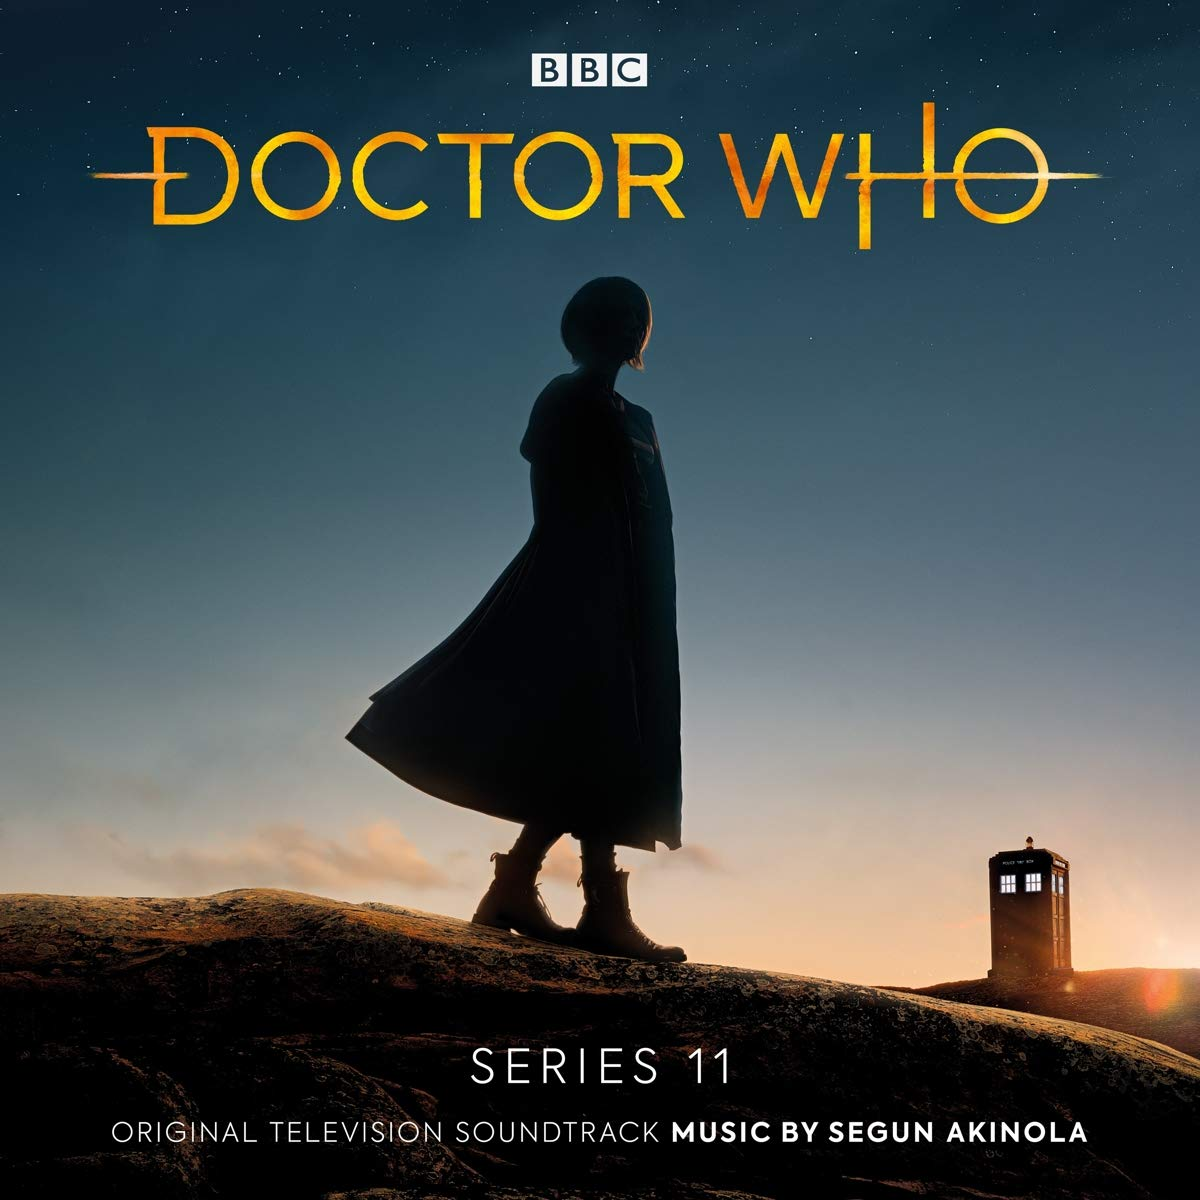 Dr Who: Series 11  - Segun Akinola